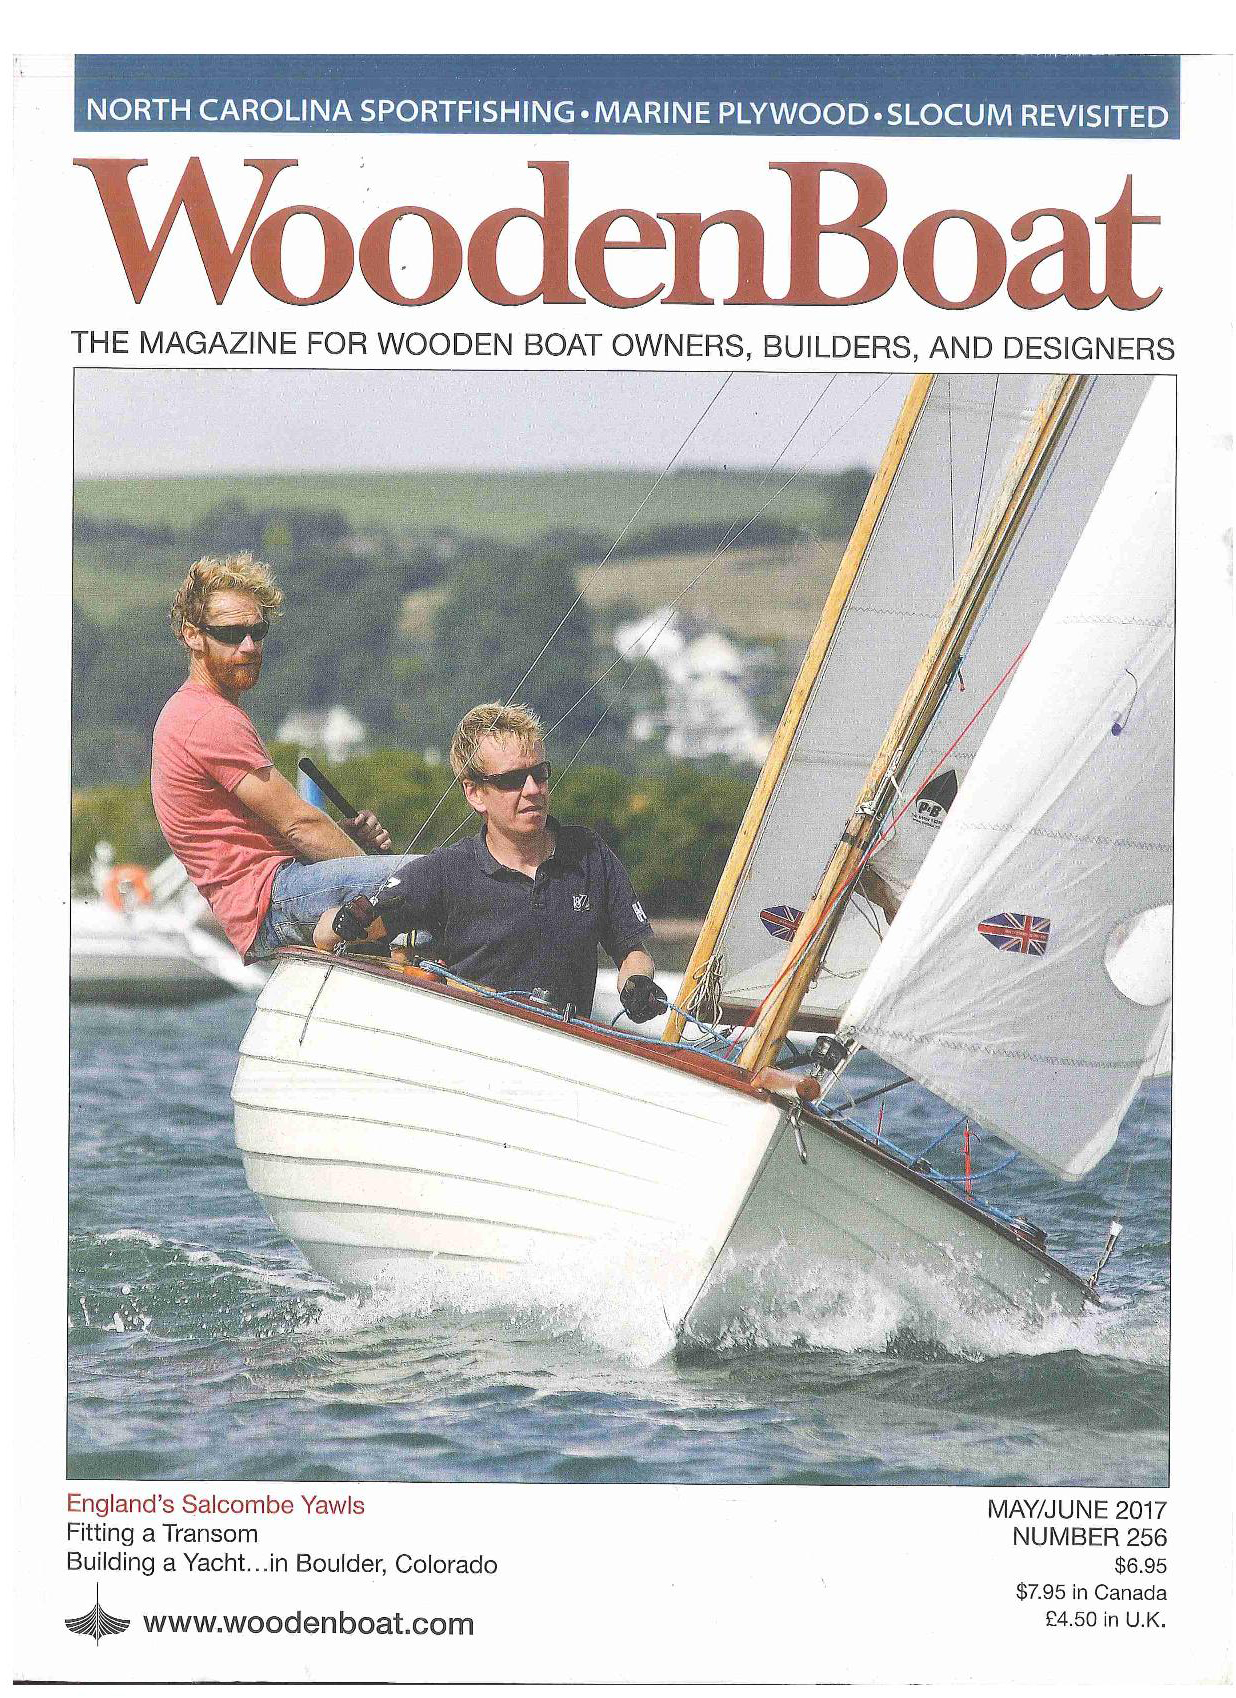 Woodenboat magazine #256: 'marine plywood: a consumer's guide'.